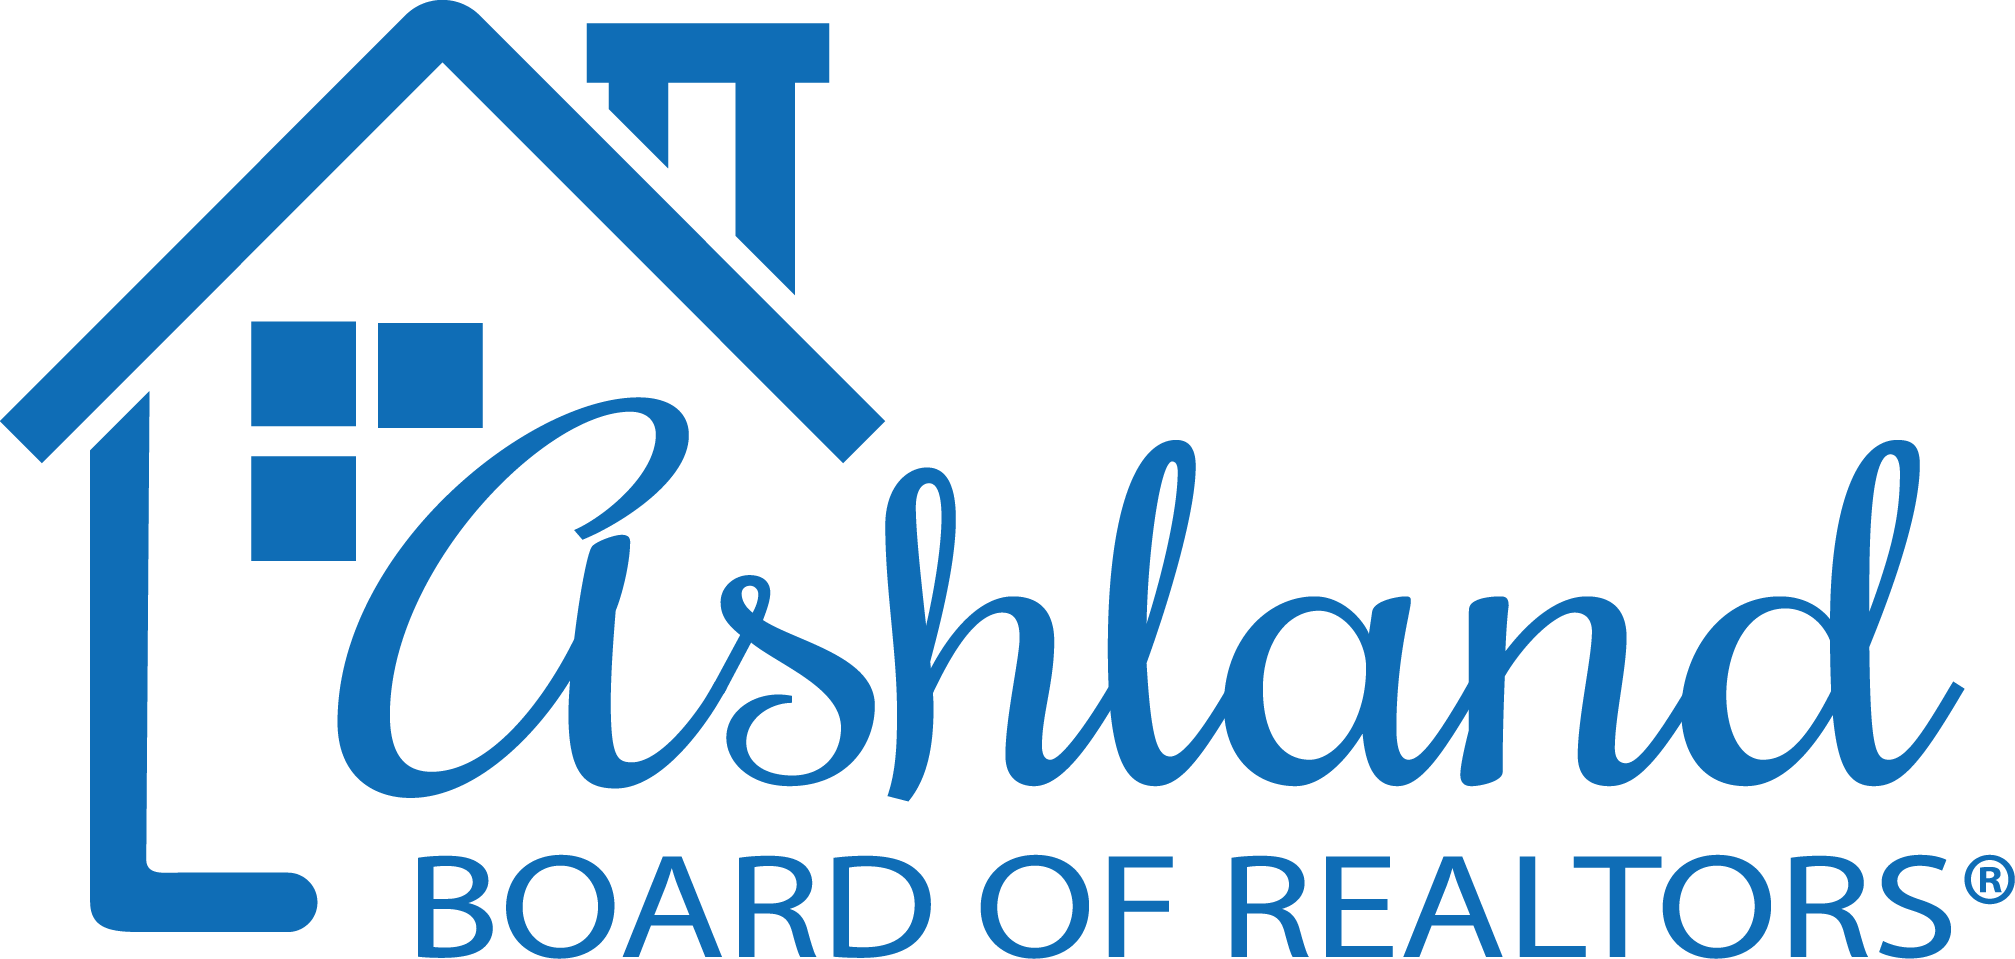 Ashland Board of REALTORS